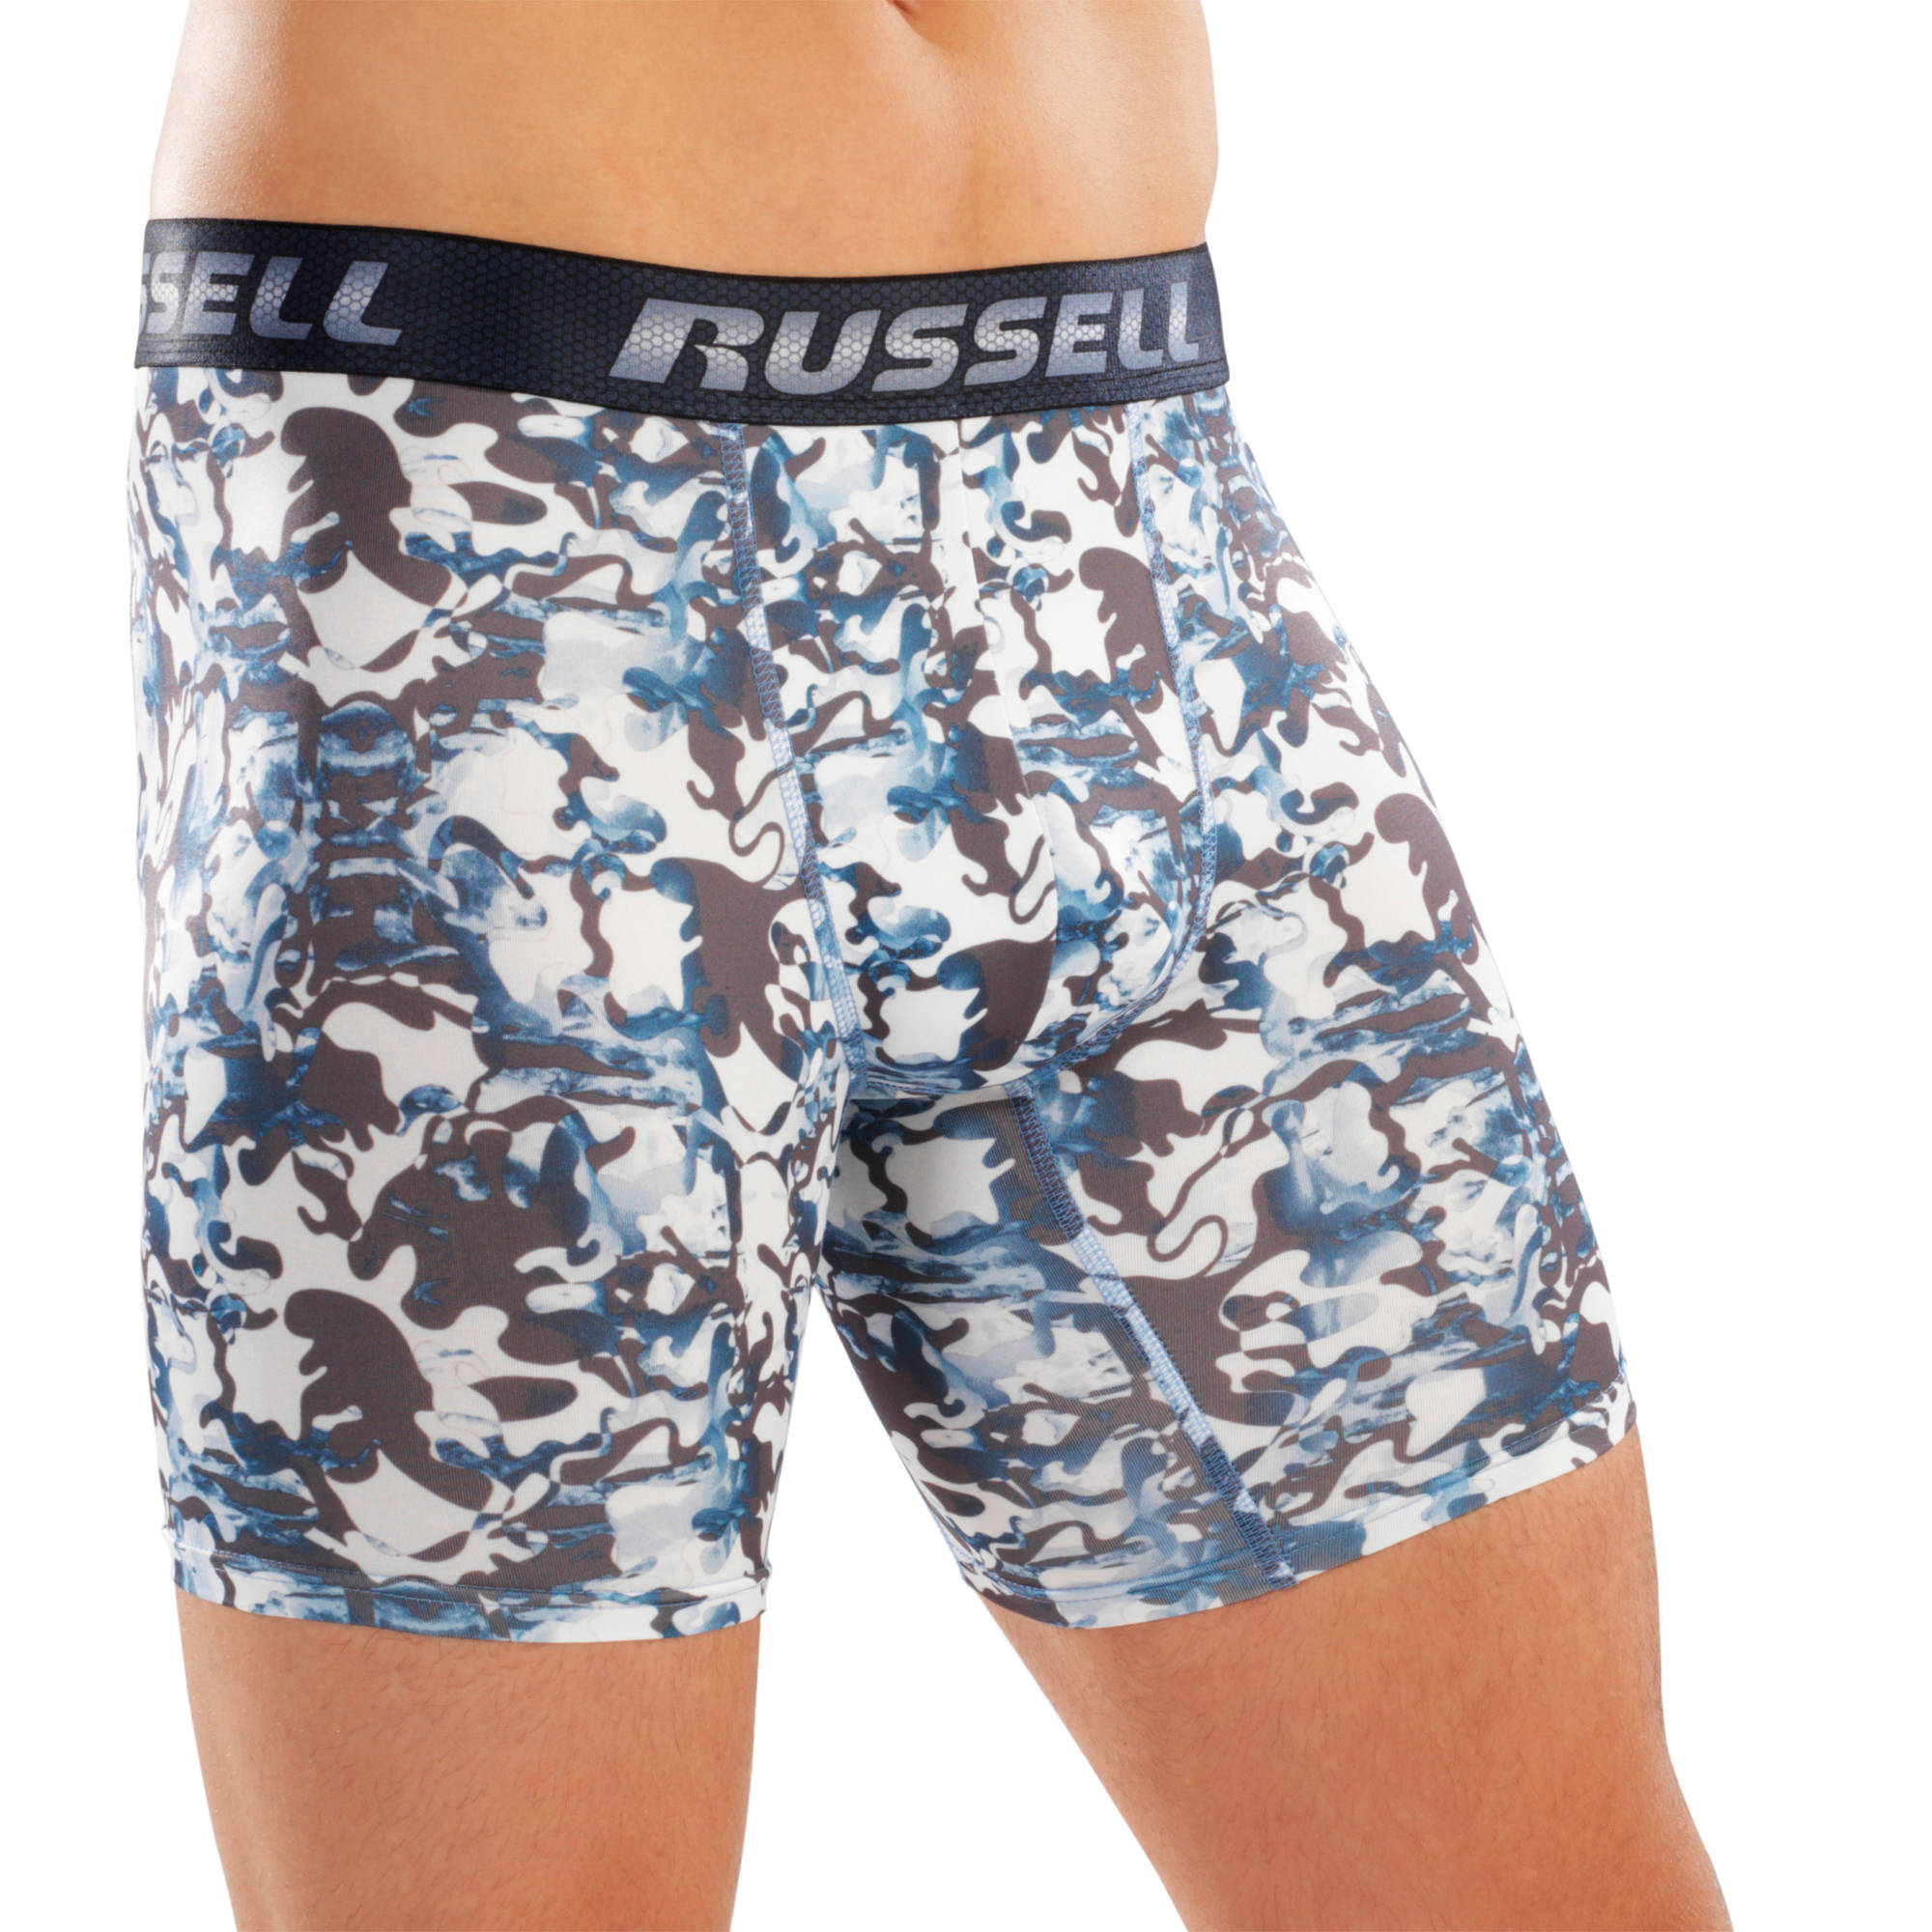 Russell Voltage Men's Performance Boxer Brief